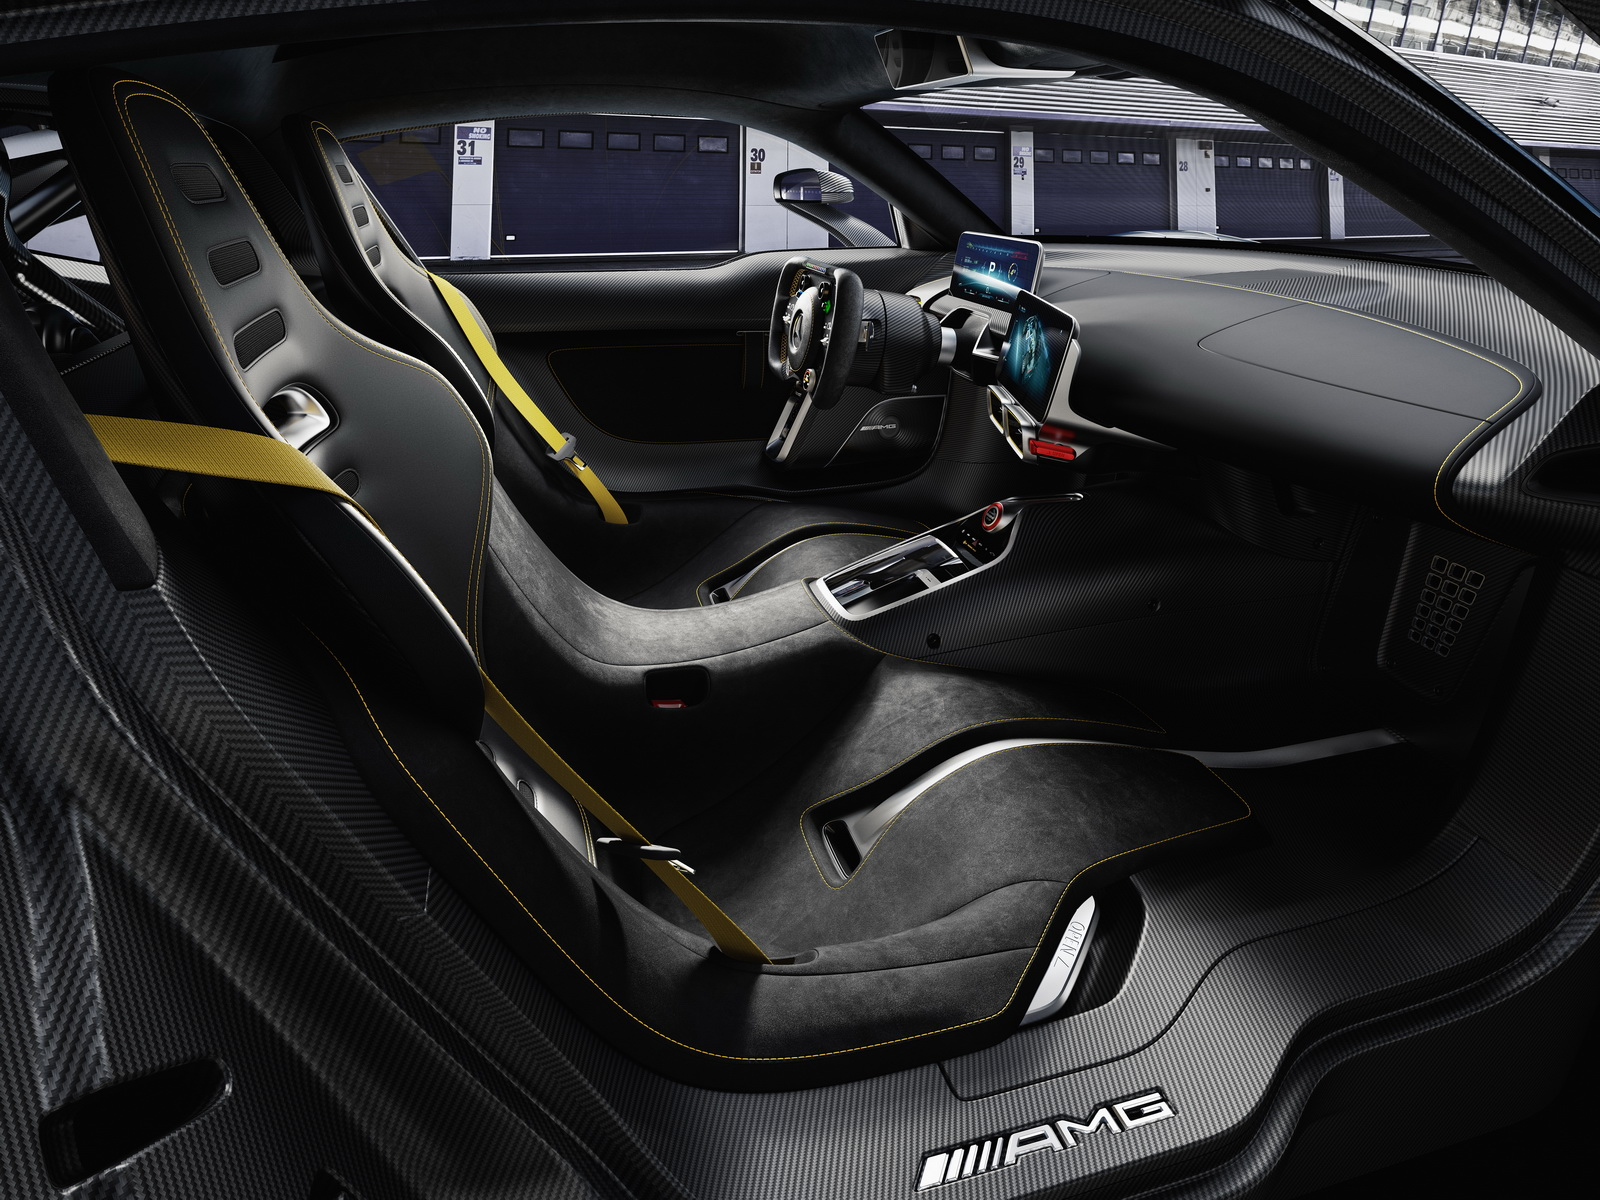 mercedes-amg-project-one-10.jpg